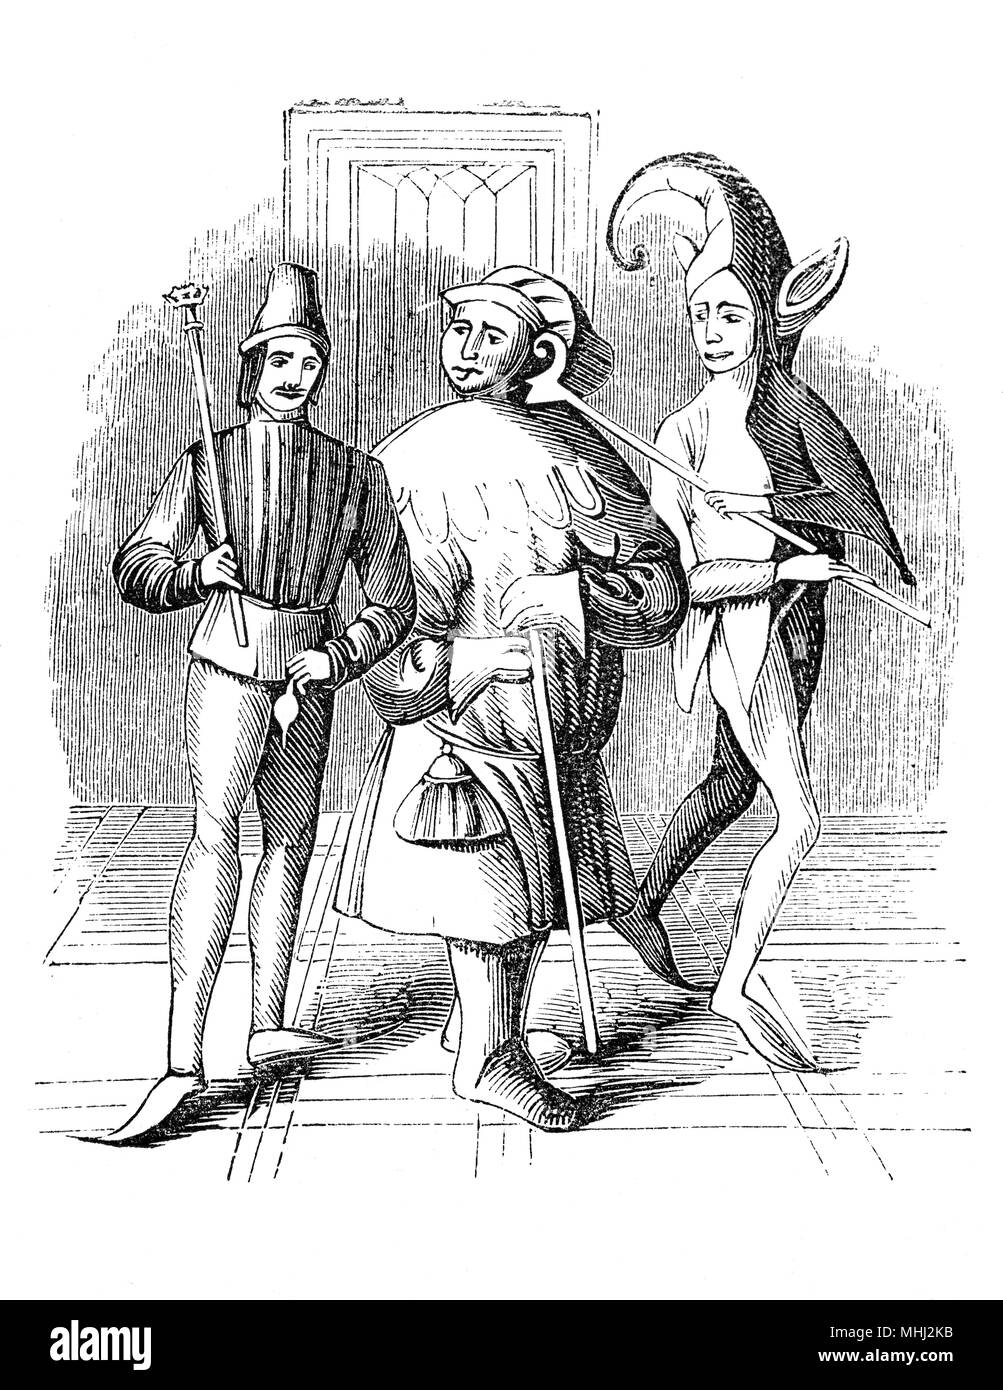 A buffoon and court fool during the medieval and Renaissance eras. They were employed to entertain the monarch or noblemen and his guests. They are thought to have worn brightly coloured clothes and eccentric hats in a motley pattern whilst making music and storytelling, along with acrobatics, juggling, telling jokes, and magic tricks.  In similar vein, buffoon is a term for someone who provides amusement through inappropriate appearance or behavior. - Stock Image